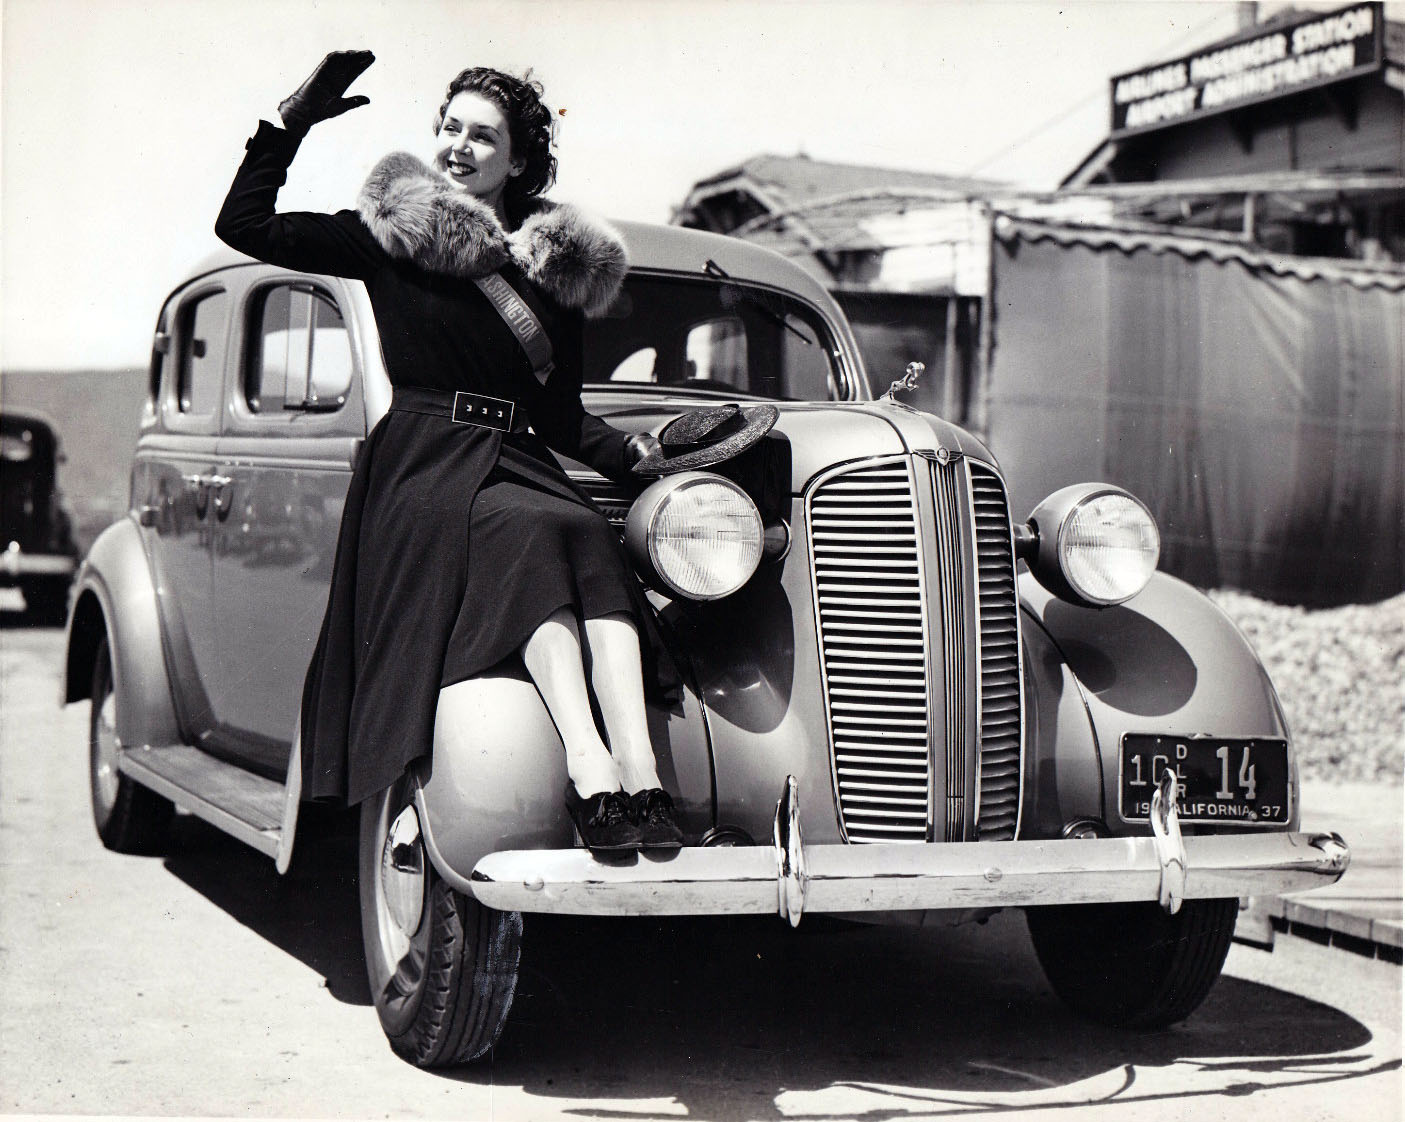 1937 Dodge wire photo